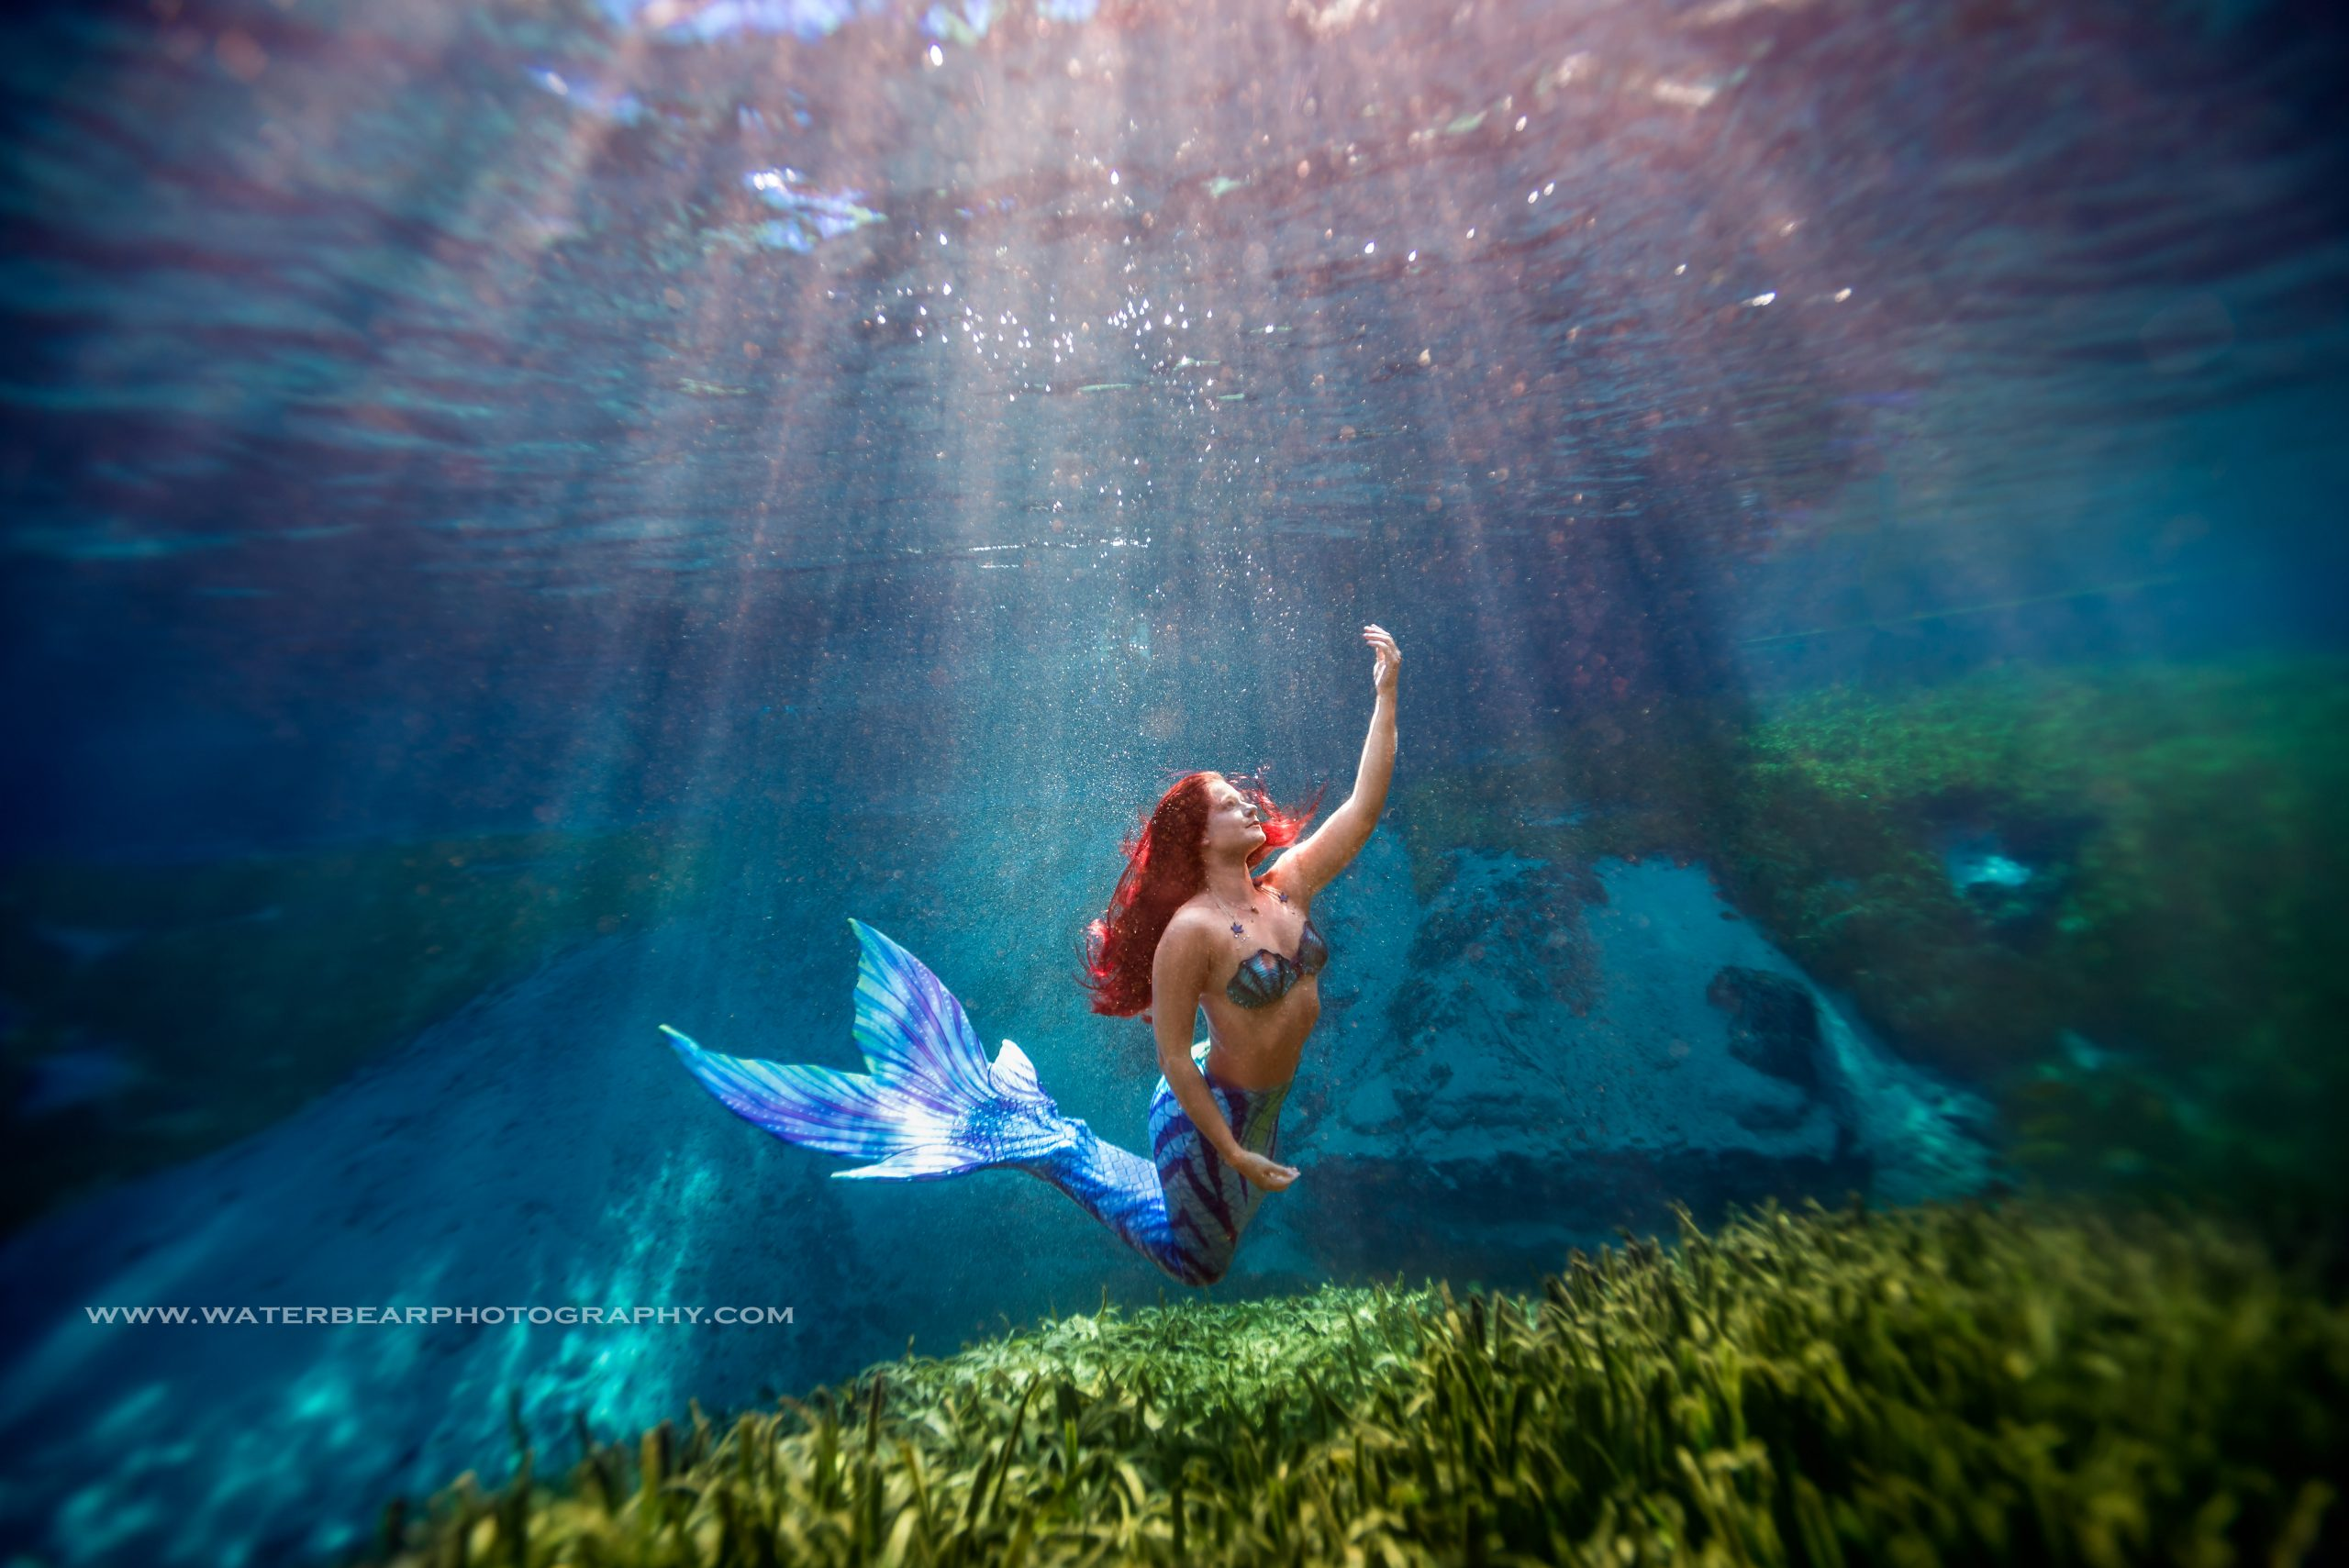 swimming with mermaids at alexander springs florida